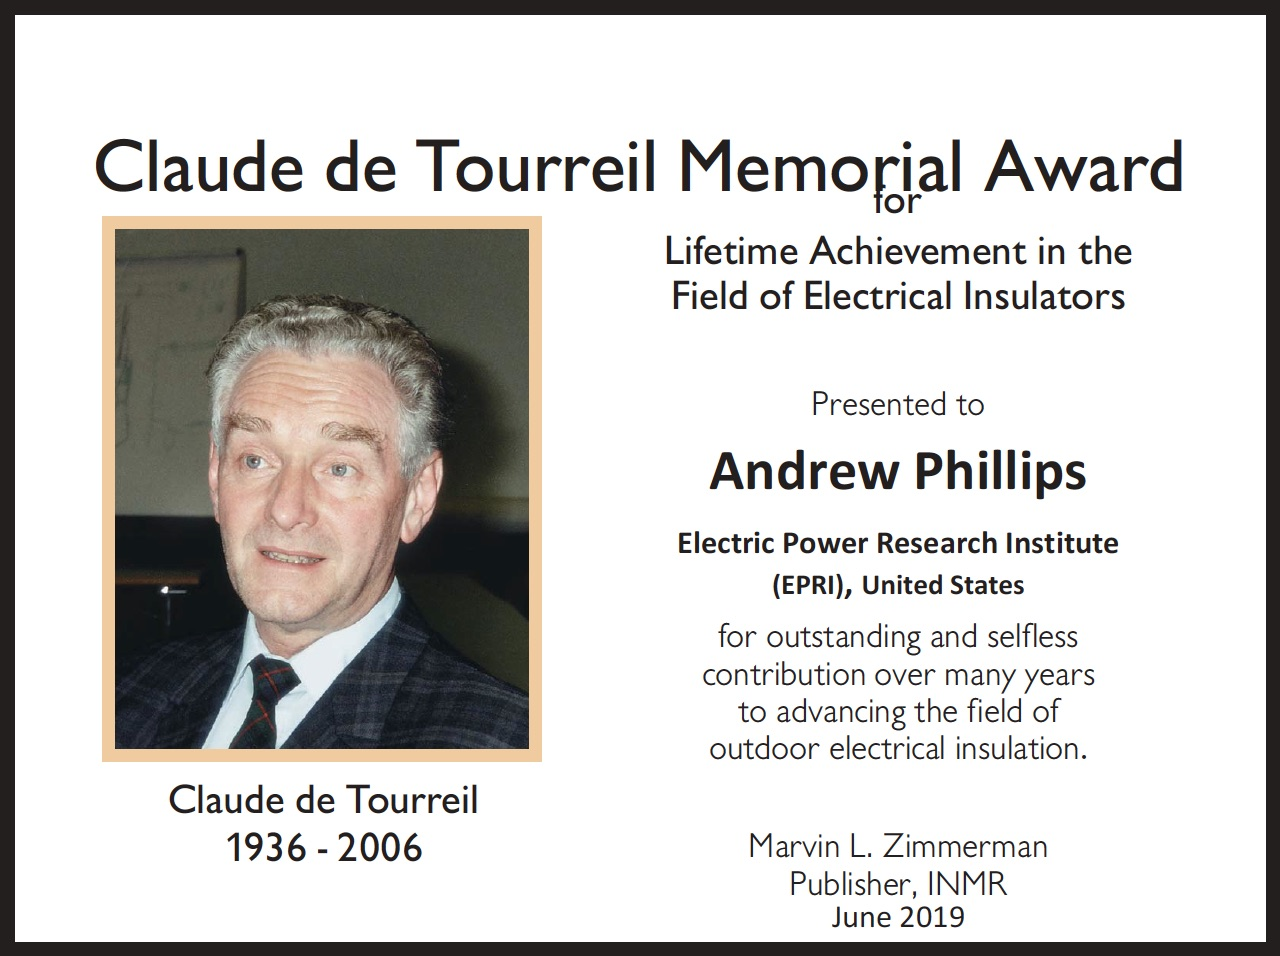 [object object] Andrew Phillips Receives 2019 Claude de Tourreil Memorial Award Andrew Phillips Receives 2019 Claude de Tourreil Memorial